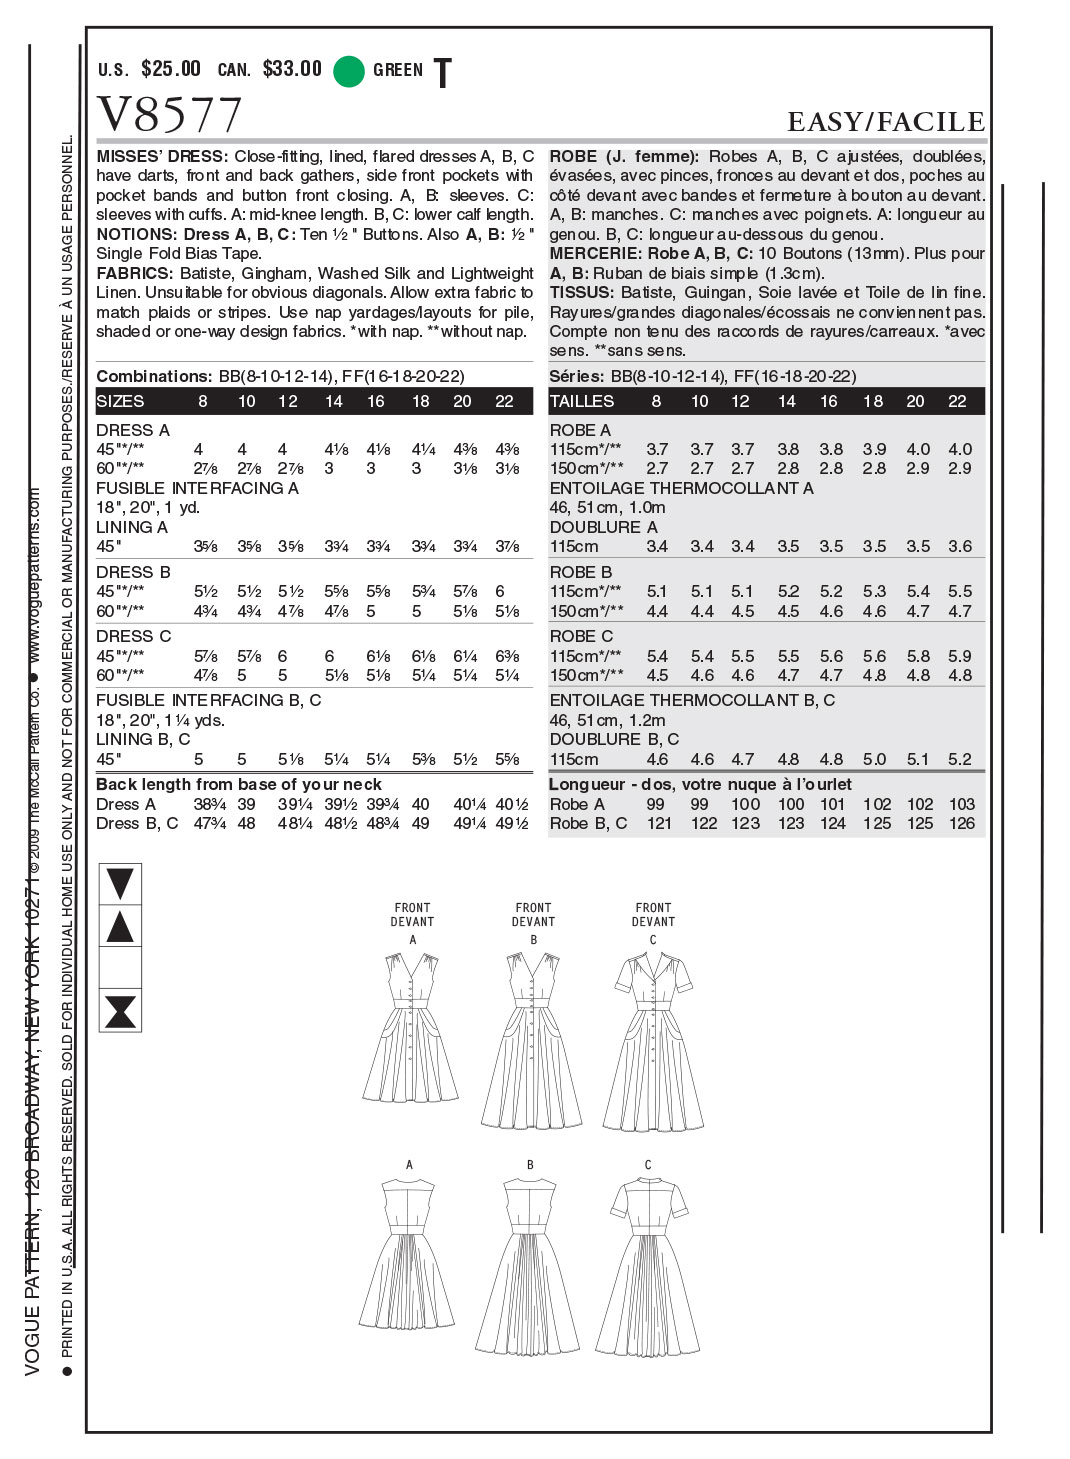 Vogue Patterns Misses Dress-V8577